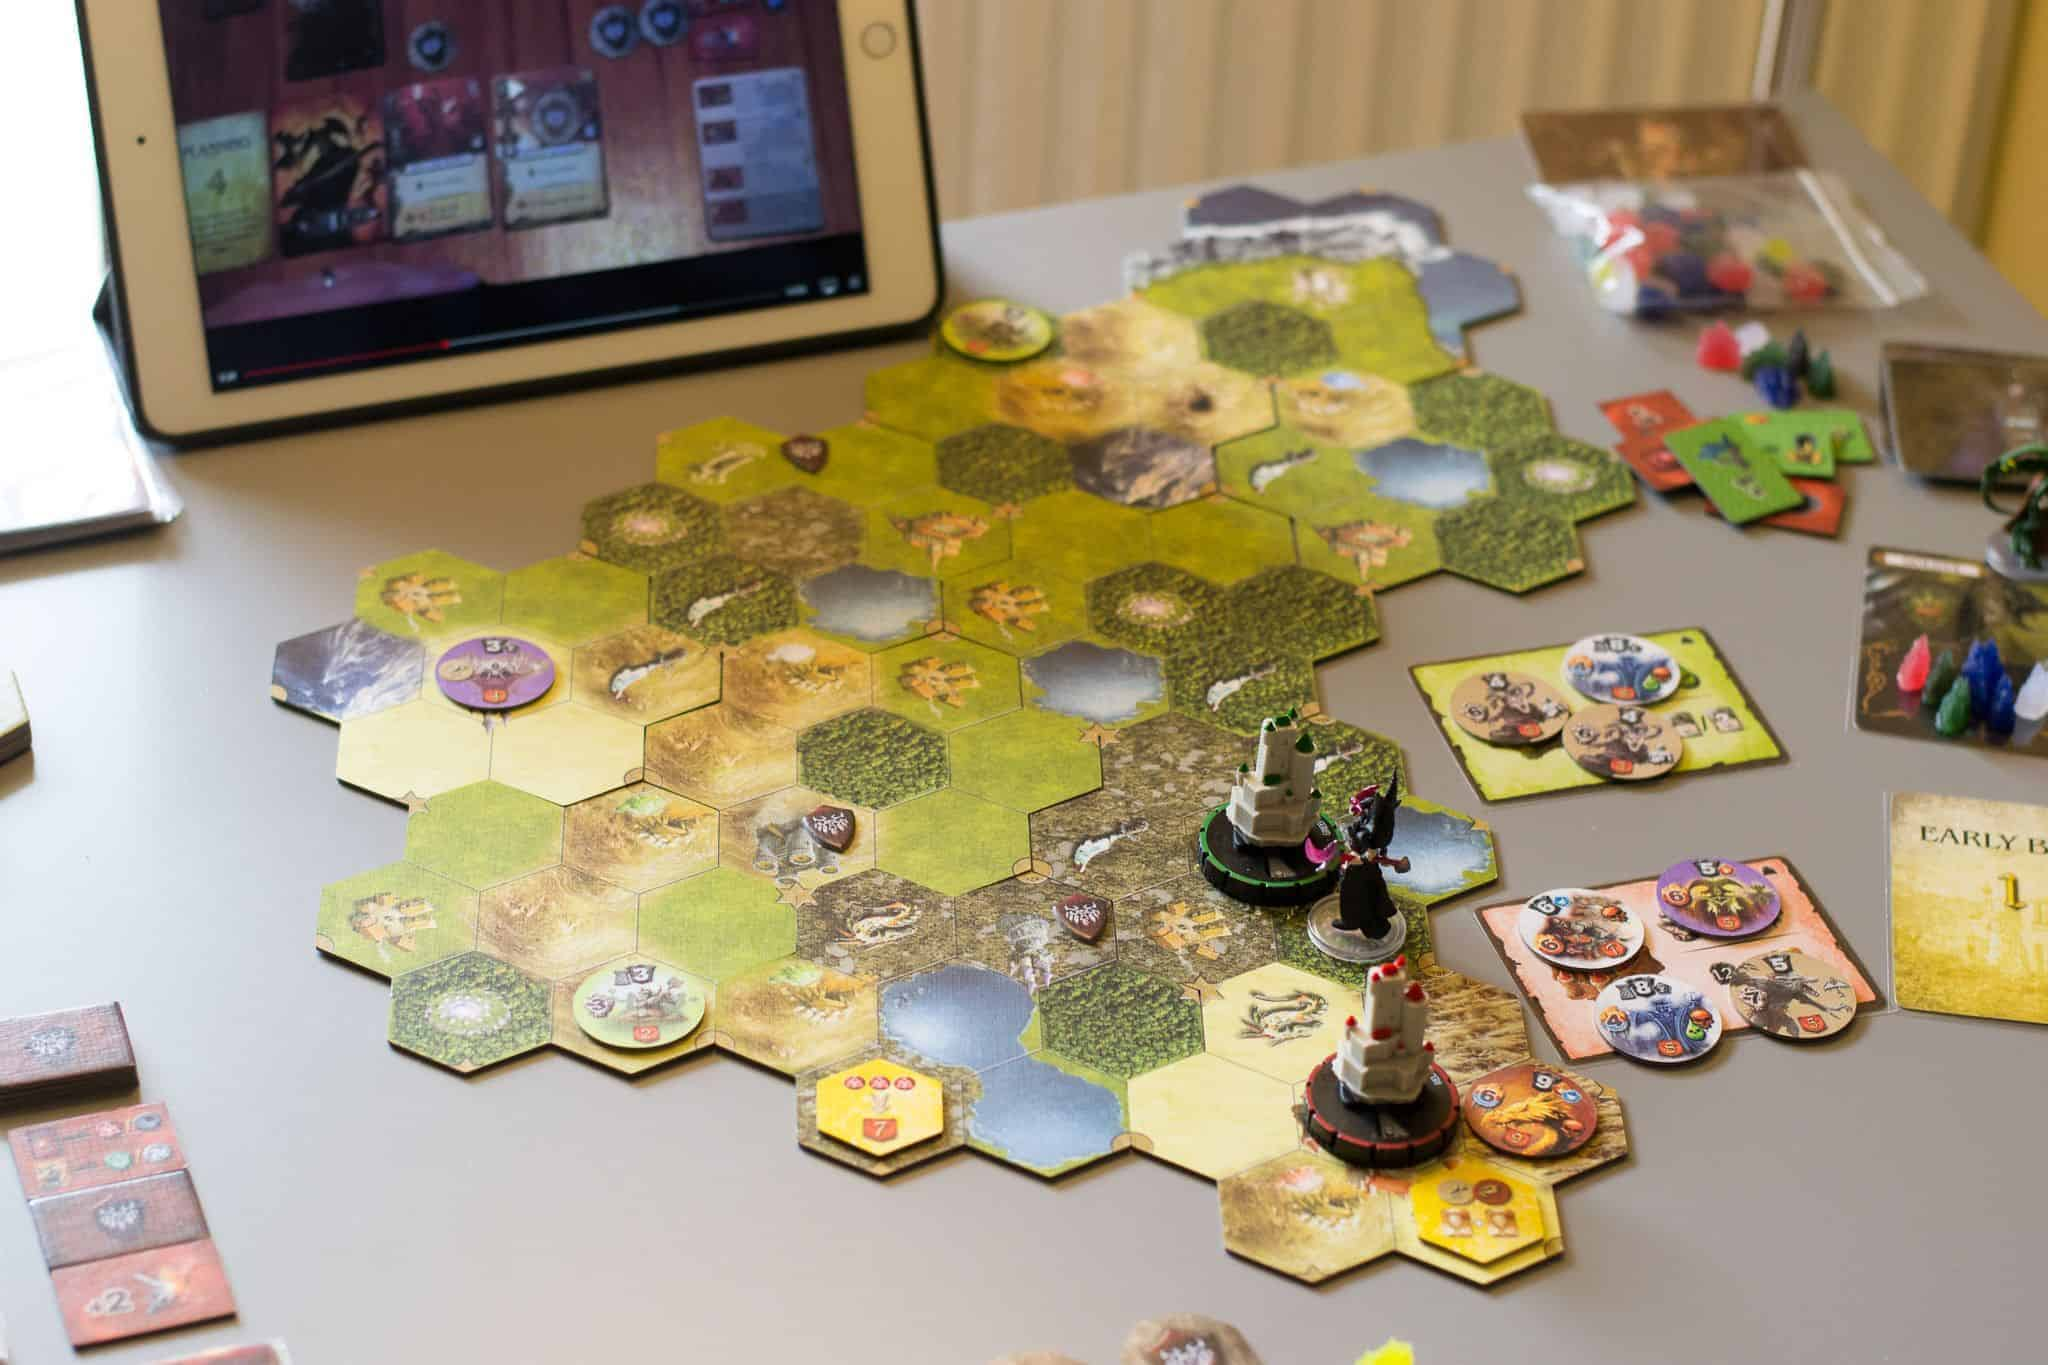 Mage Knight the Board Game